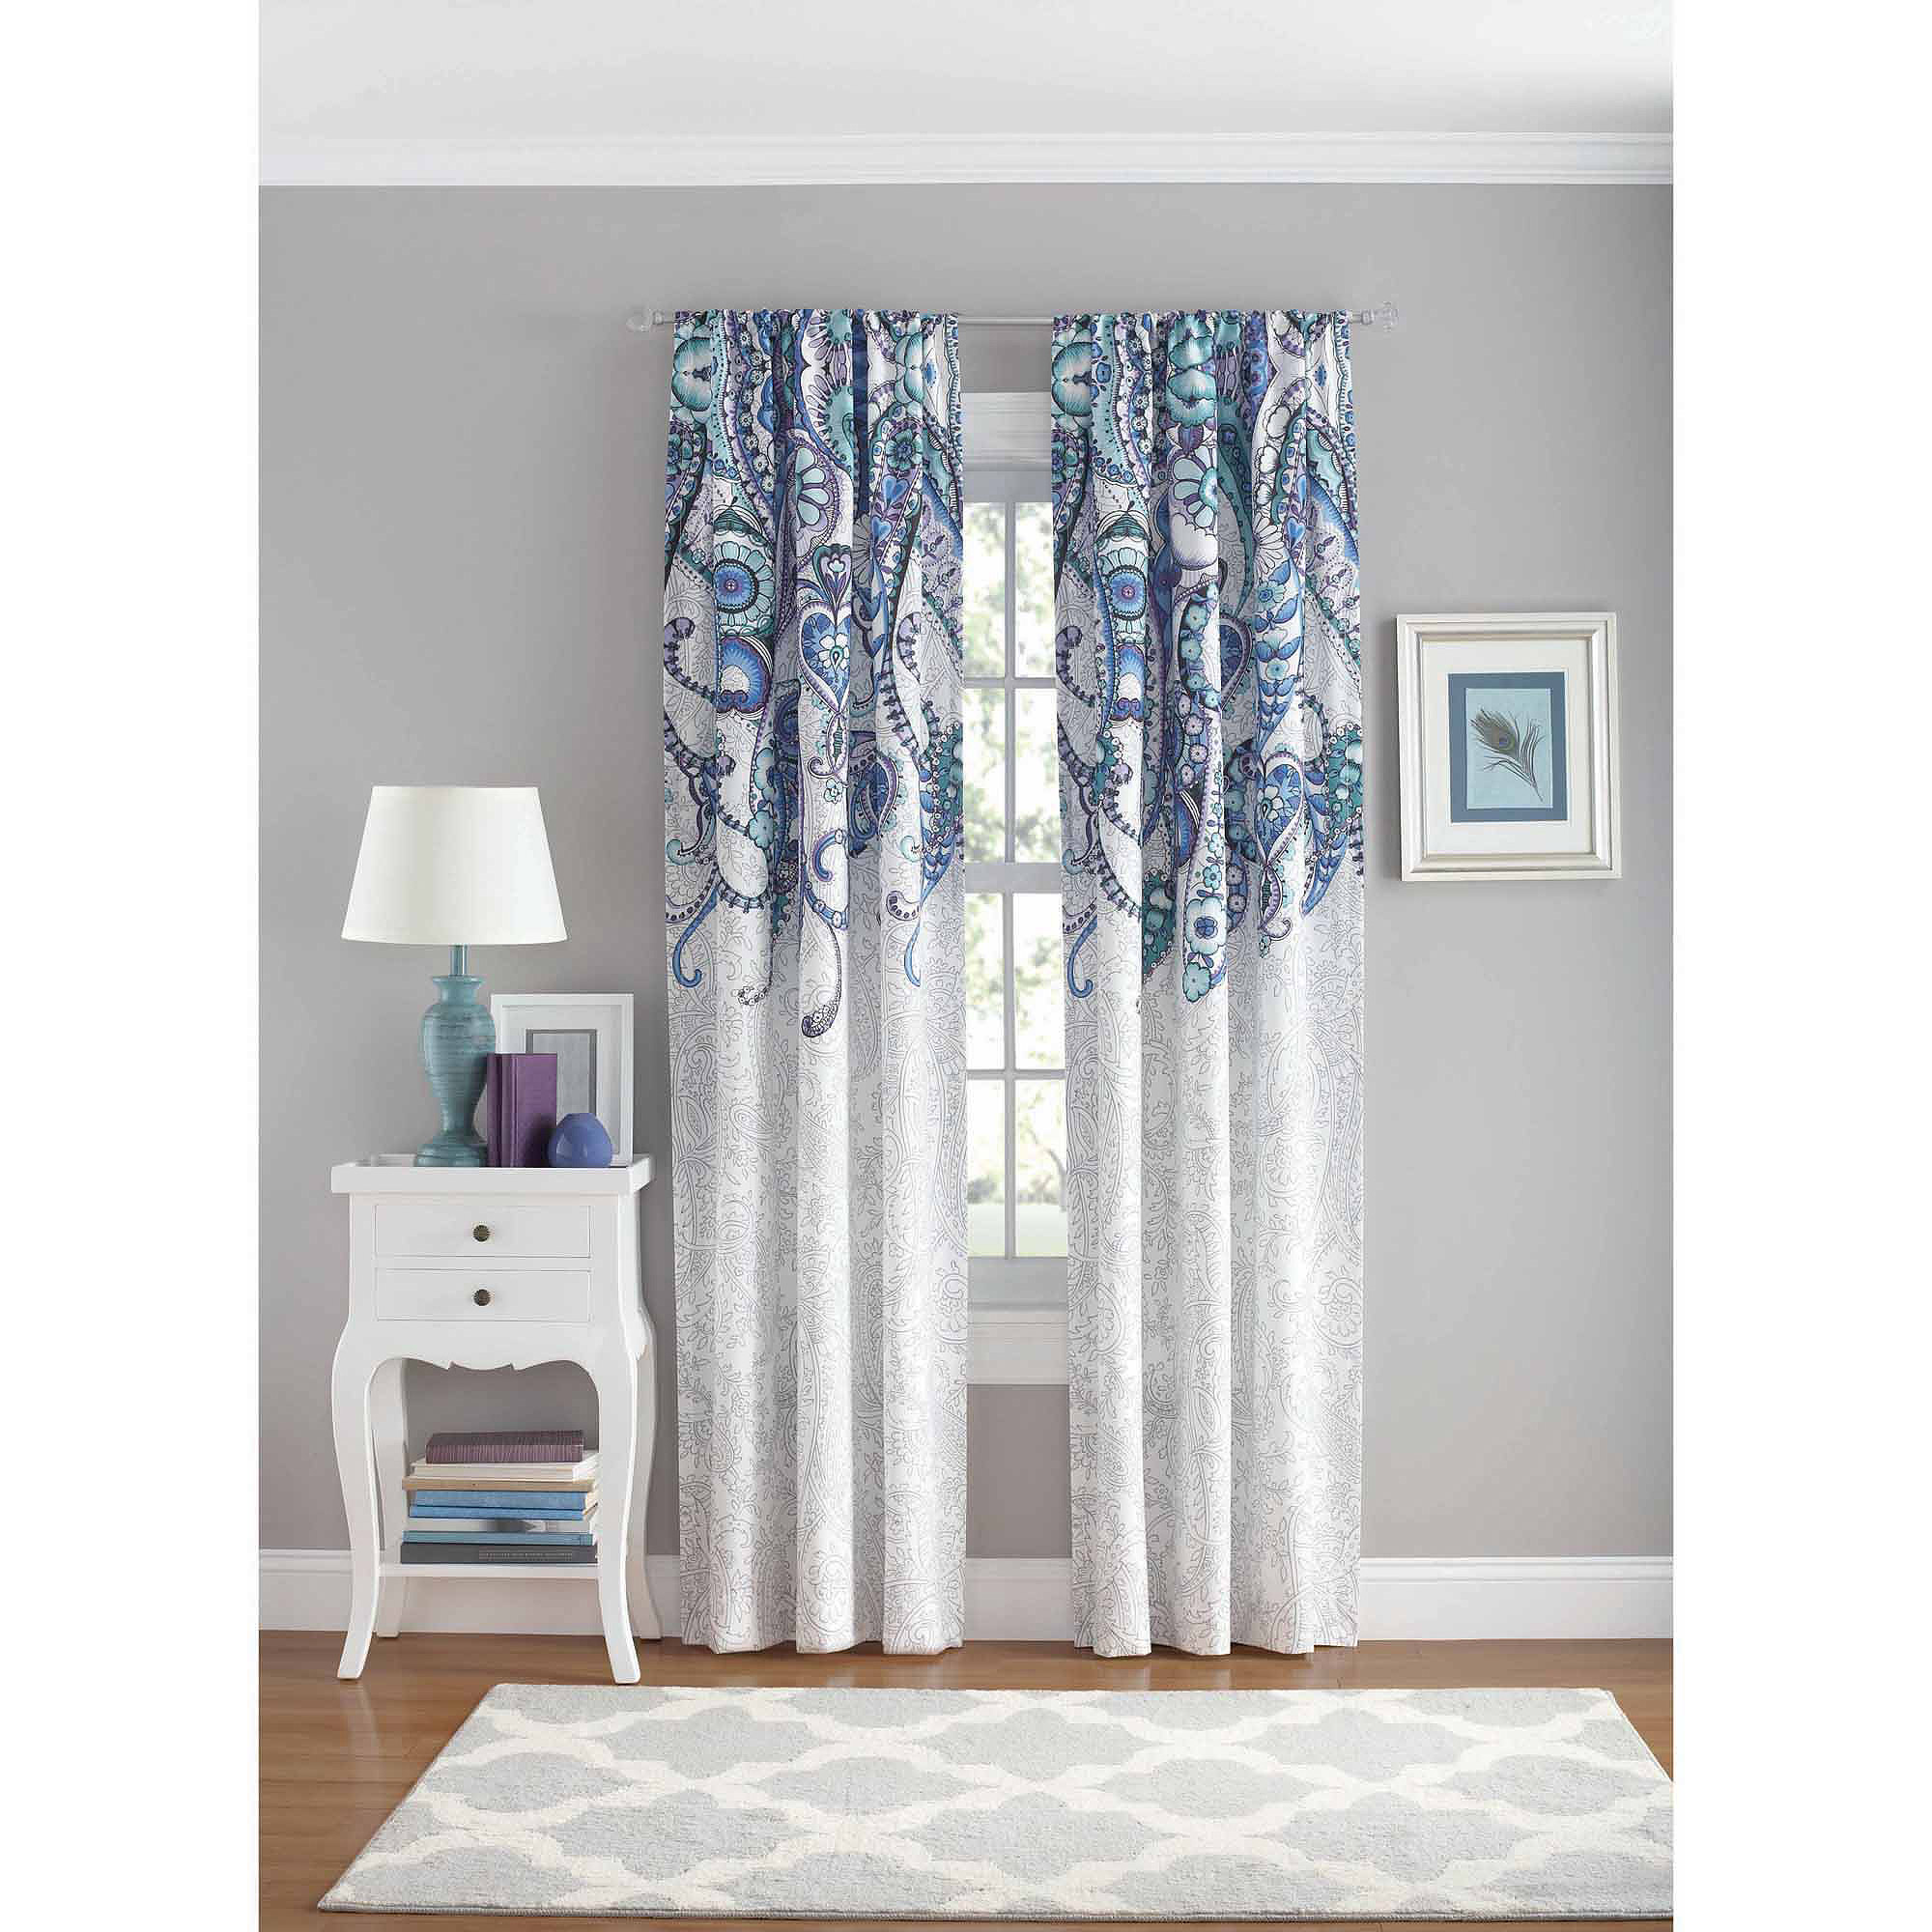 Walmart Curtains For Living Room Your Zone Paisley Bedroom Curtain Panel  Walmart